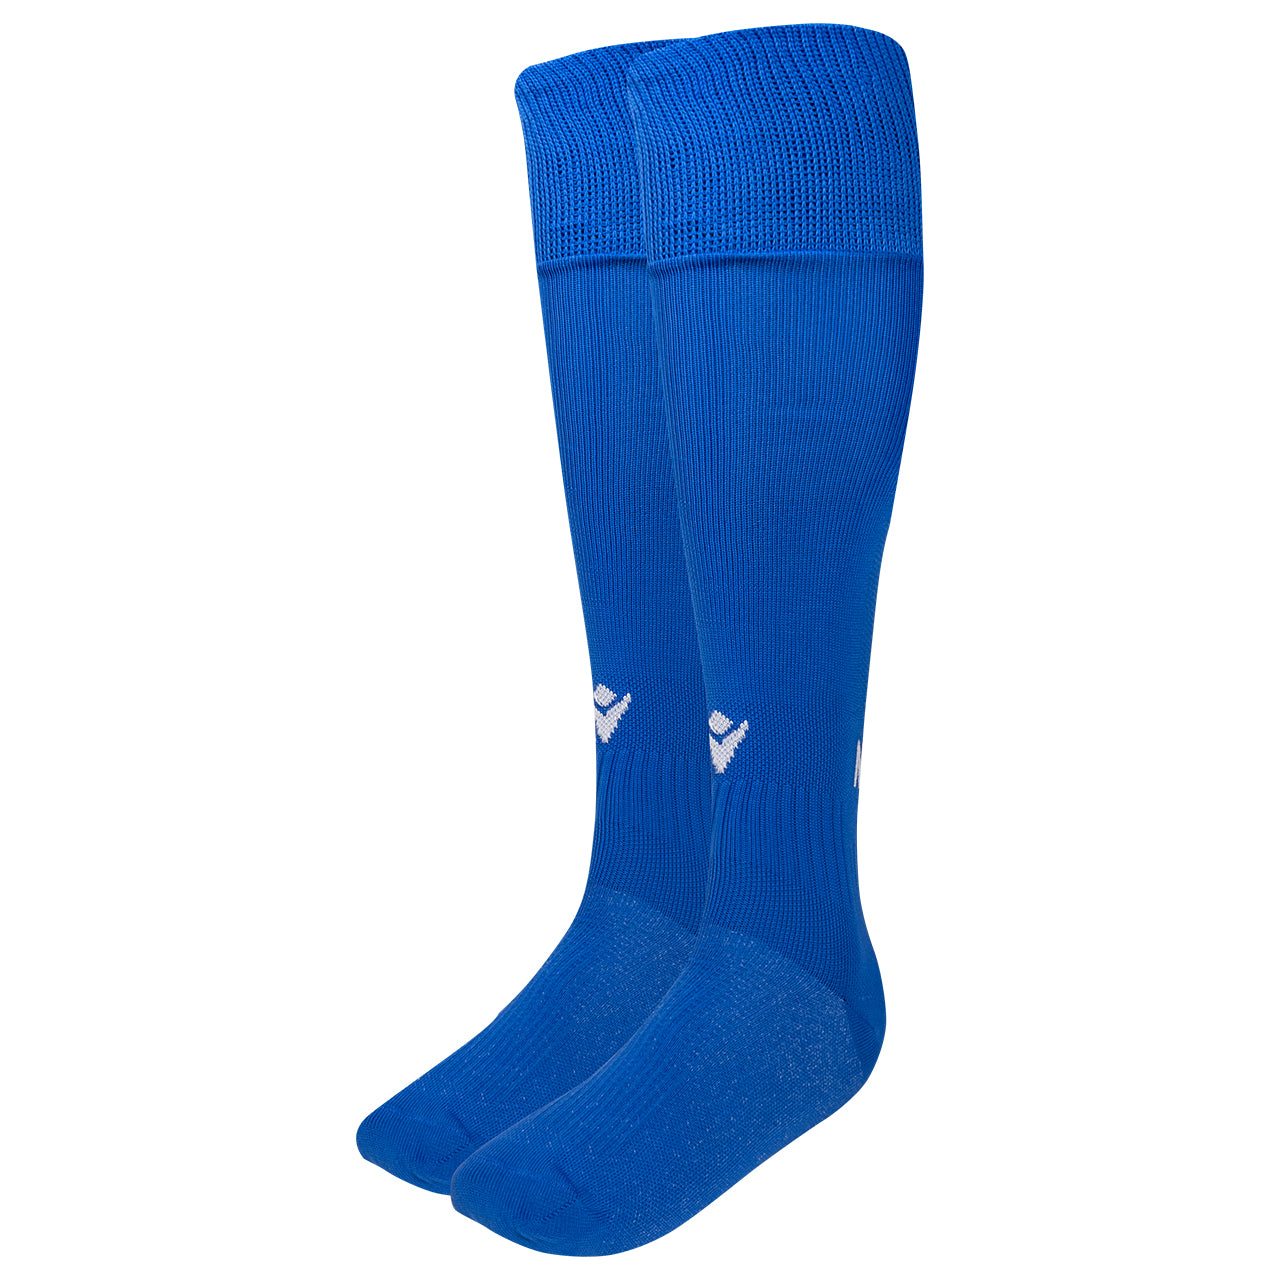 NFFC Mens Away Socks 2020/21